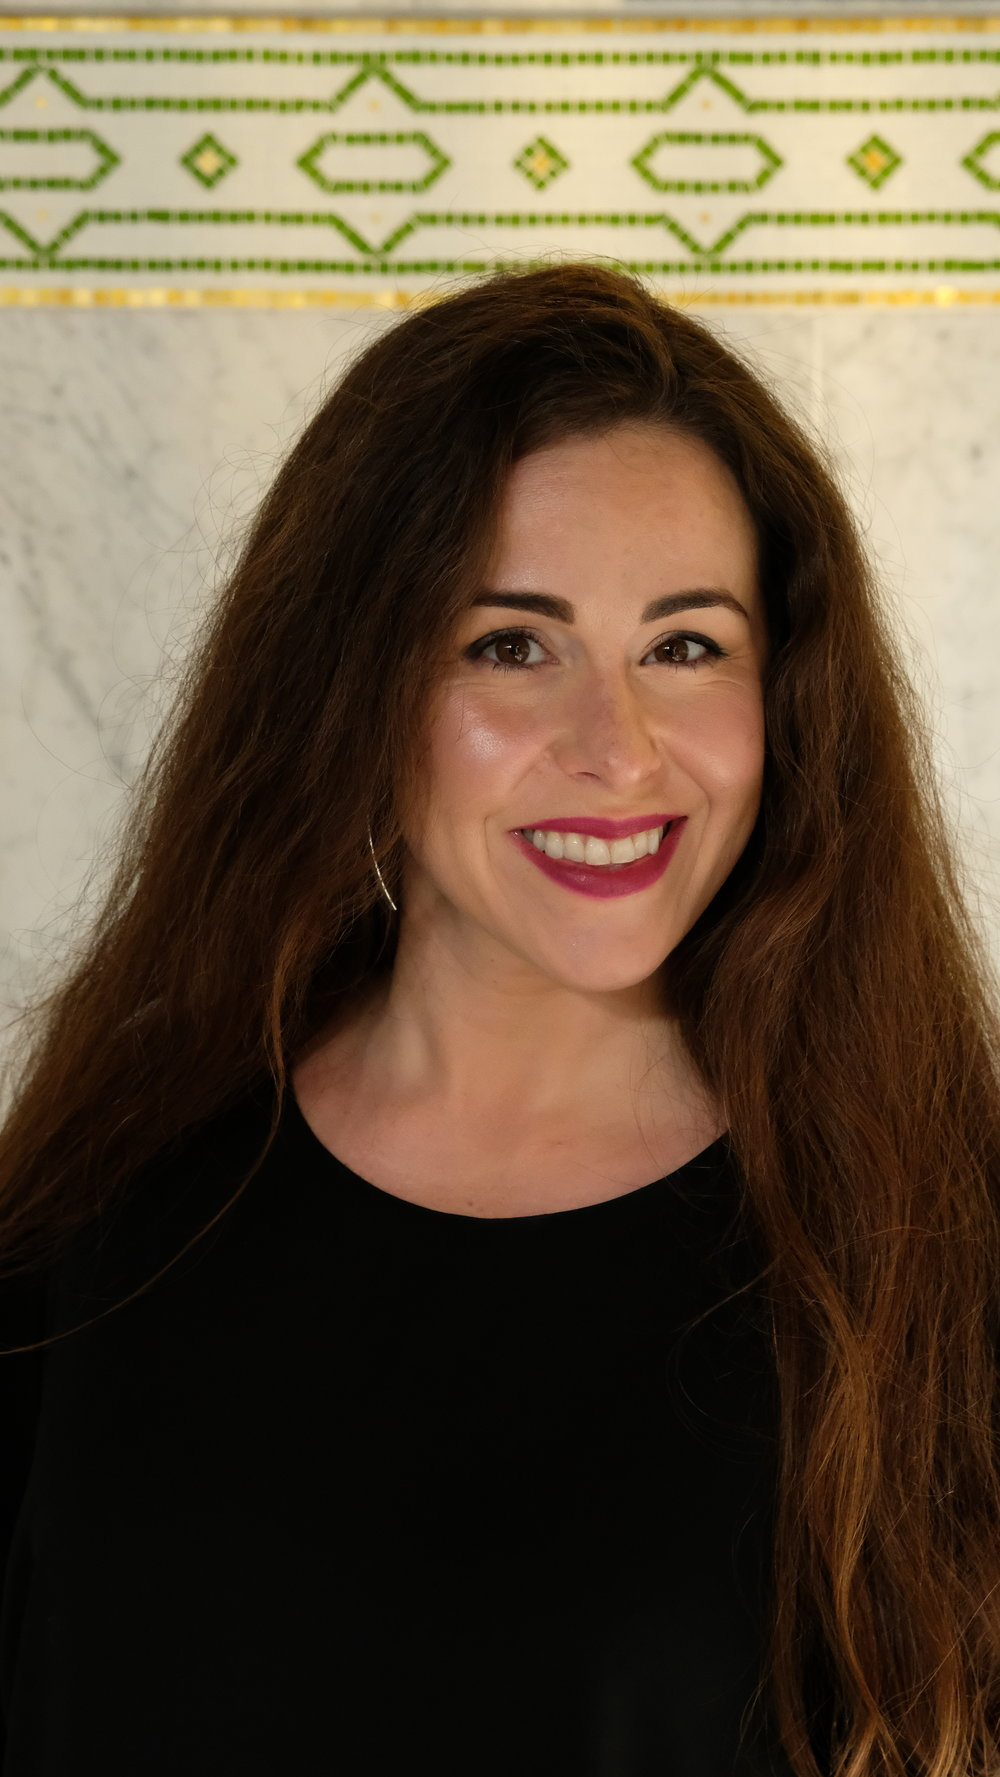 Kristen Millares Young is the author of  Subduction , a novel forthcoming from Red Hen Press in April 2020. A prizewinning journalist and essayist, she is serving as the 2018–2020 prose writer-in-residence at Hugo House. Her work has appeared in the  Washington Post , the  Guardian,  and  The New York Times.